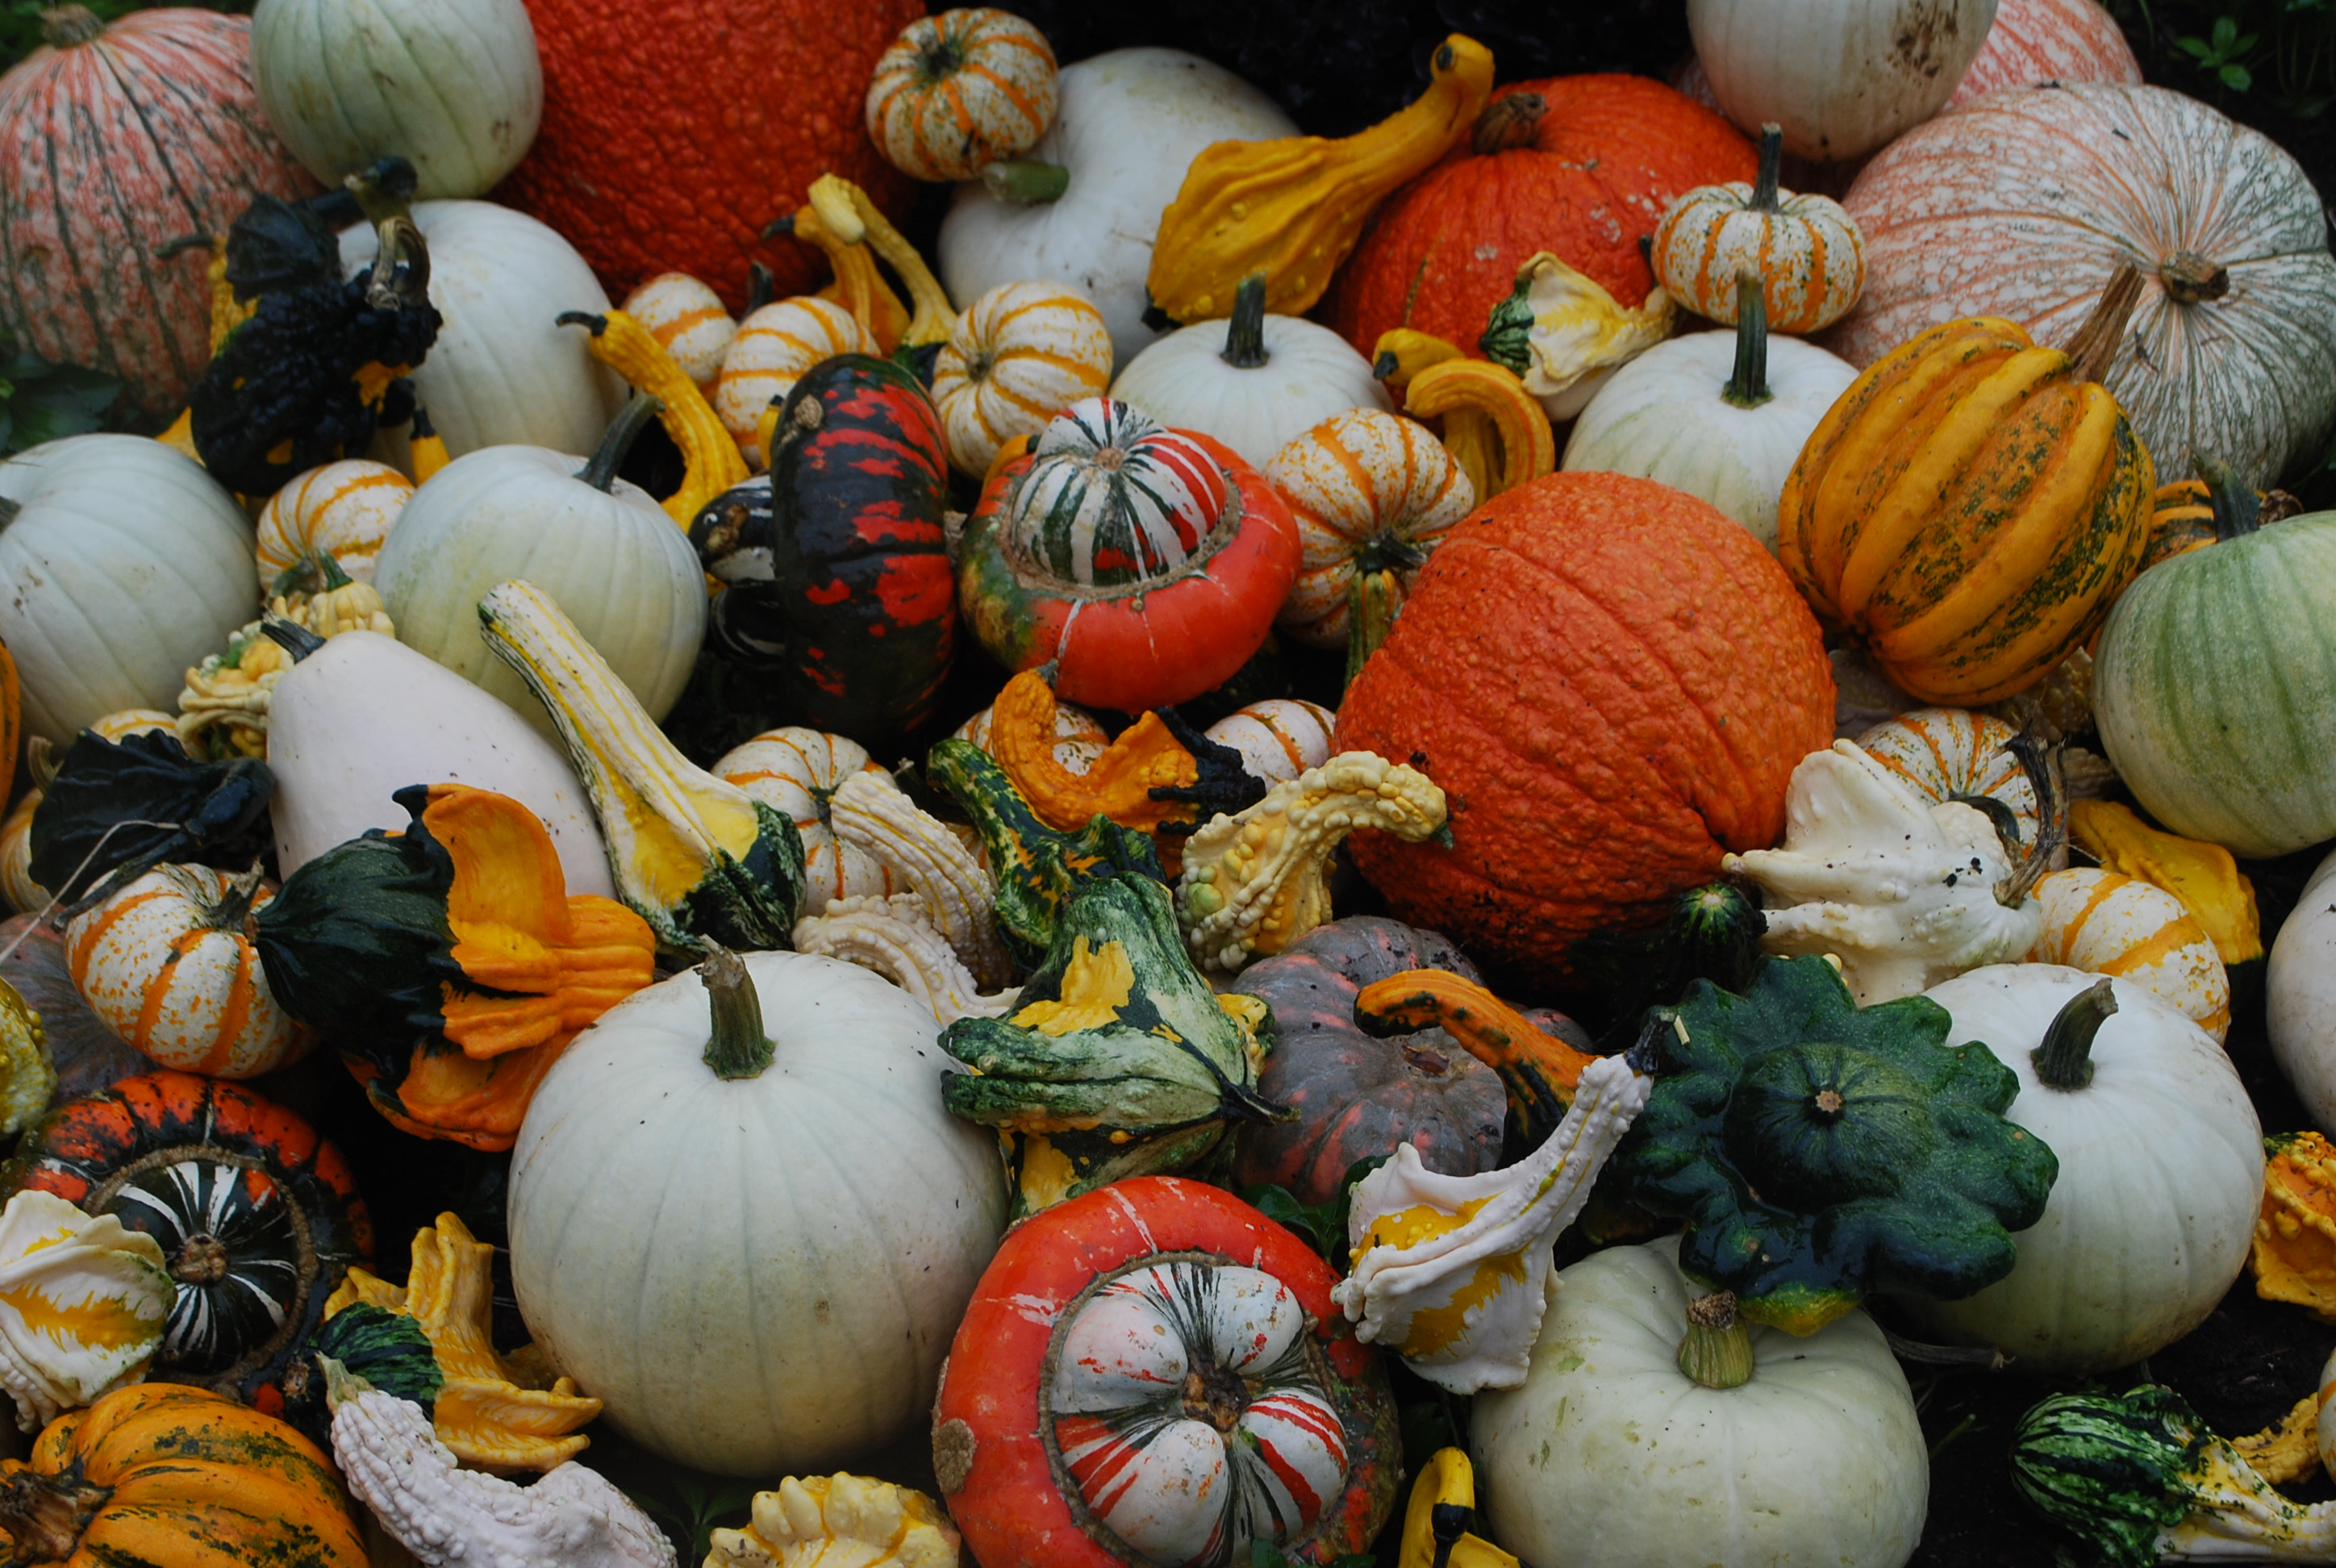 Going Gaga for Gourds | Let's Hear It For the Squash